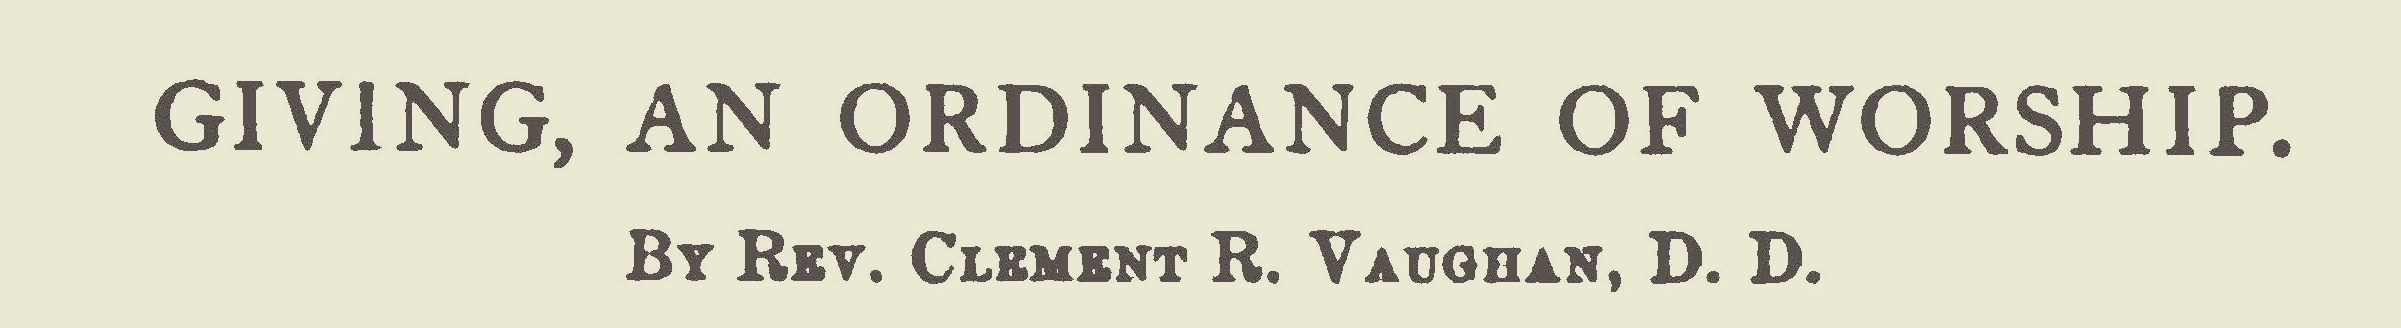 Vaughan, Clement Read, Giving, An Ordinance of Worship Title Page.jpg